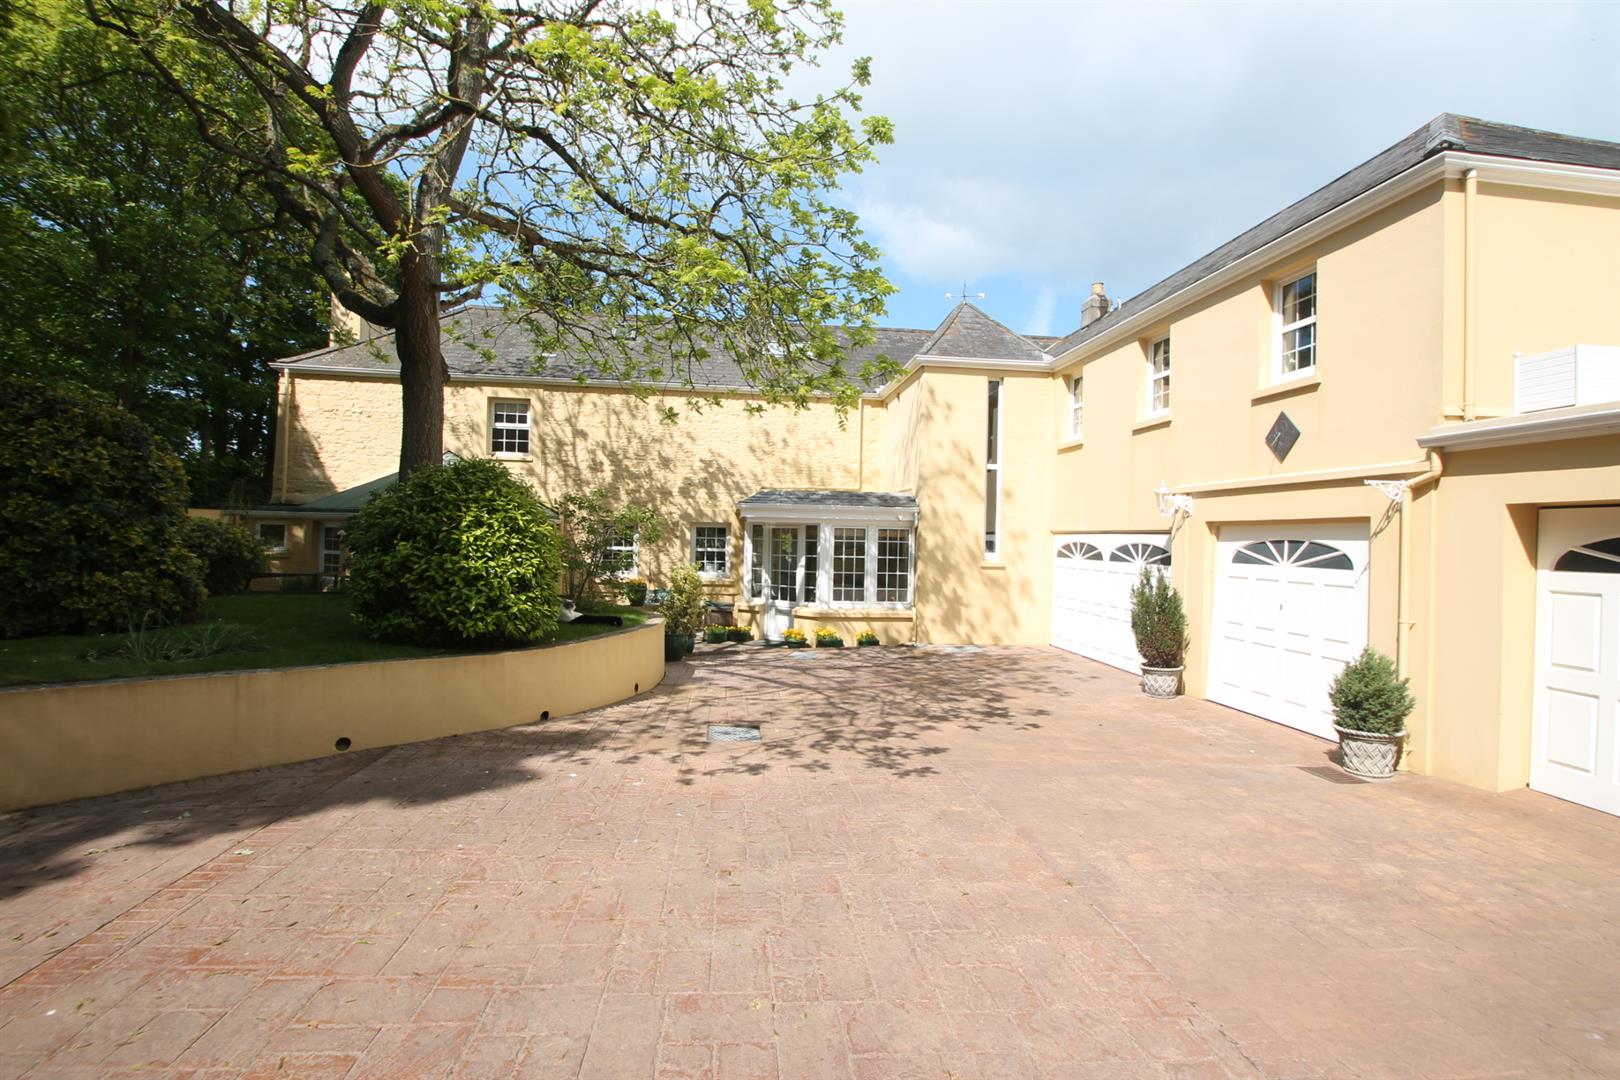 5 Bedroom Detached House For Sale In Jersey